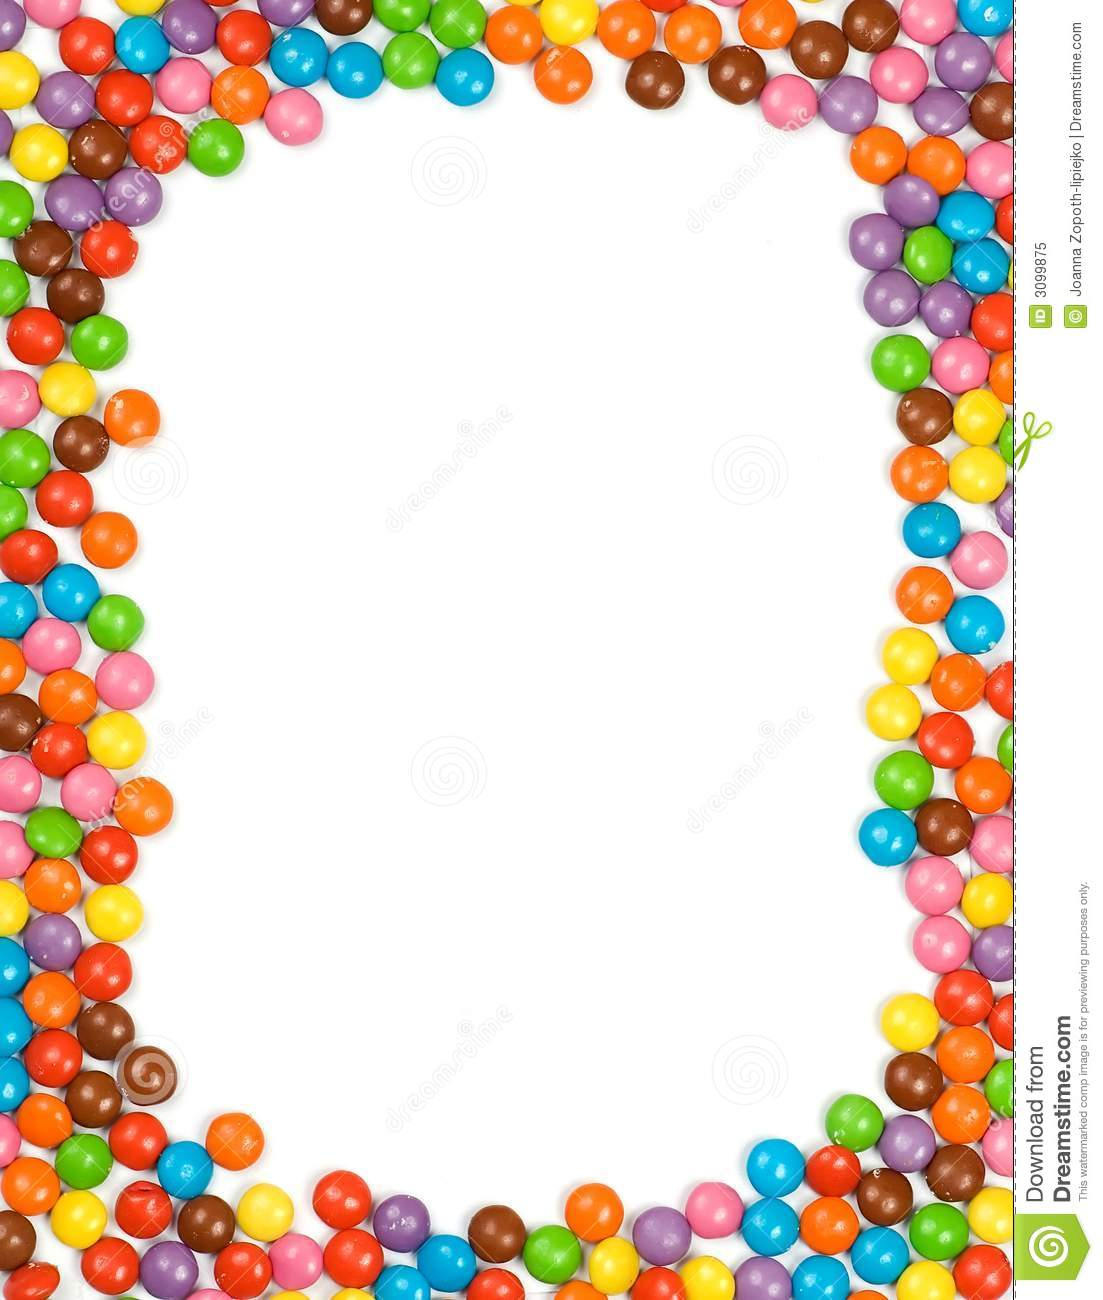 M&m's clipart border Clipart Chocolate Royalty Free Border